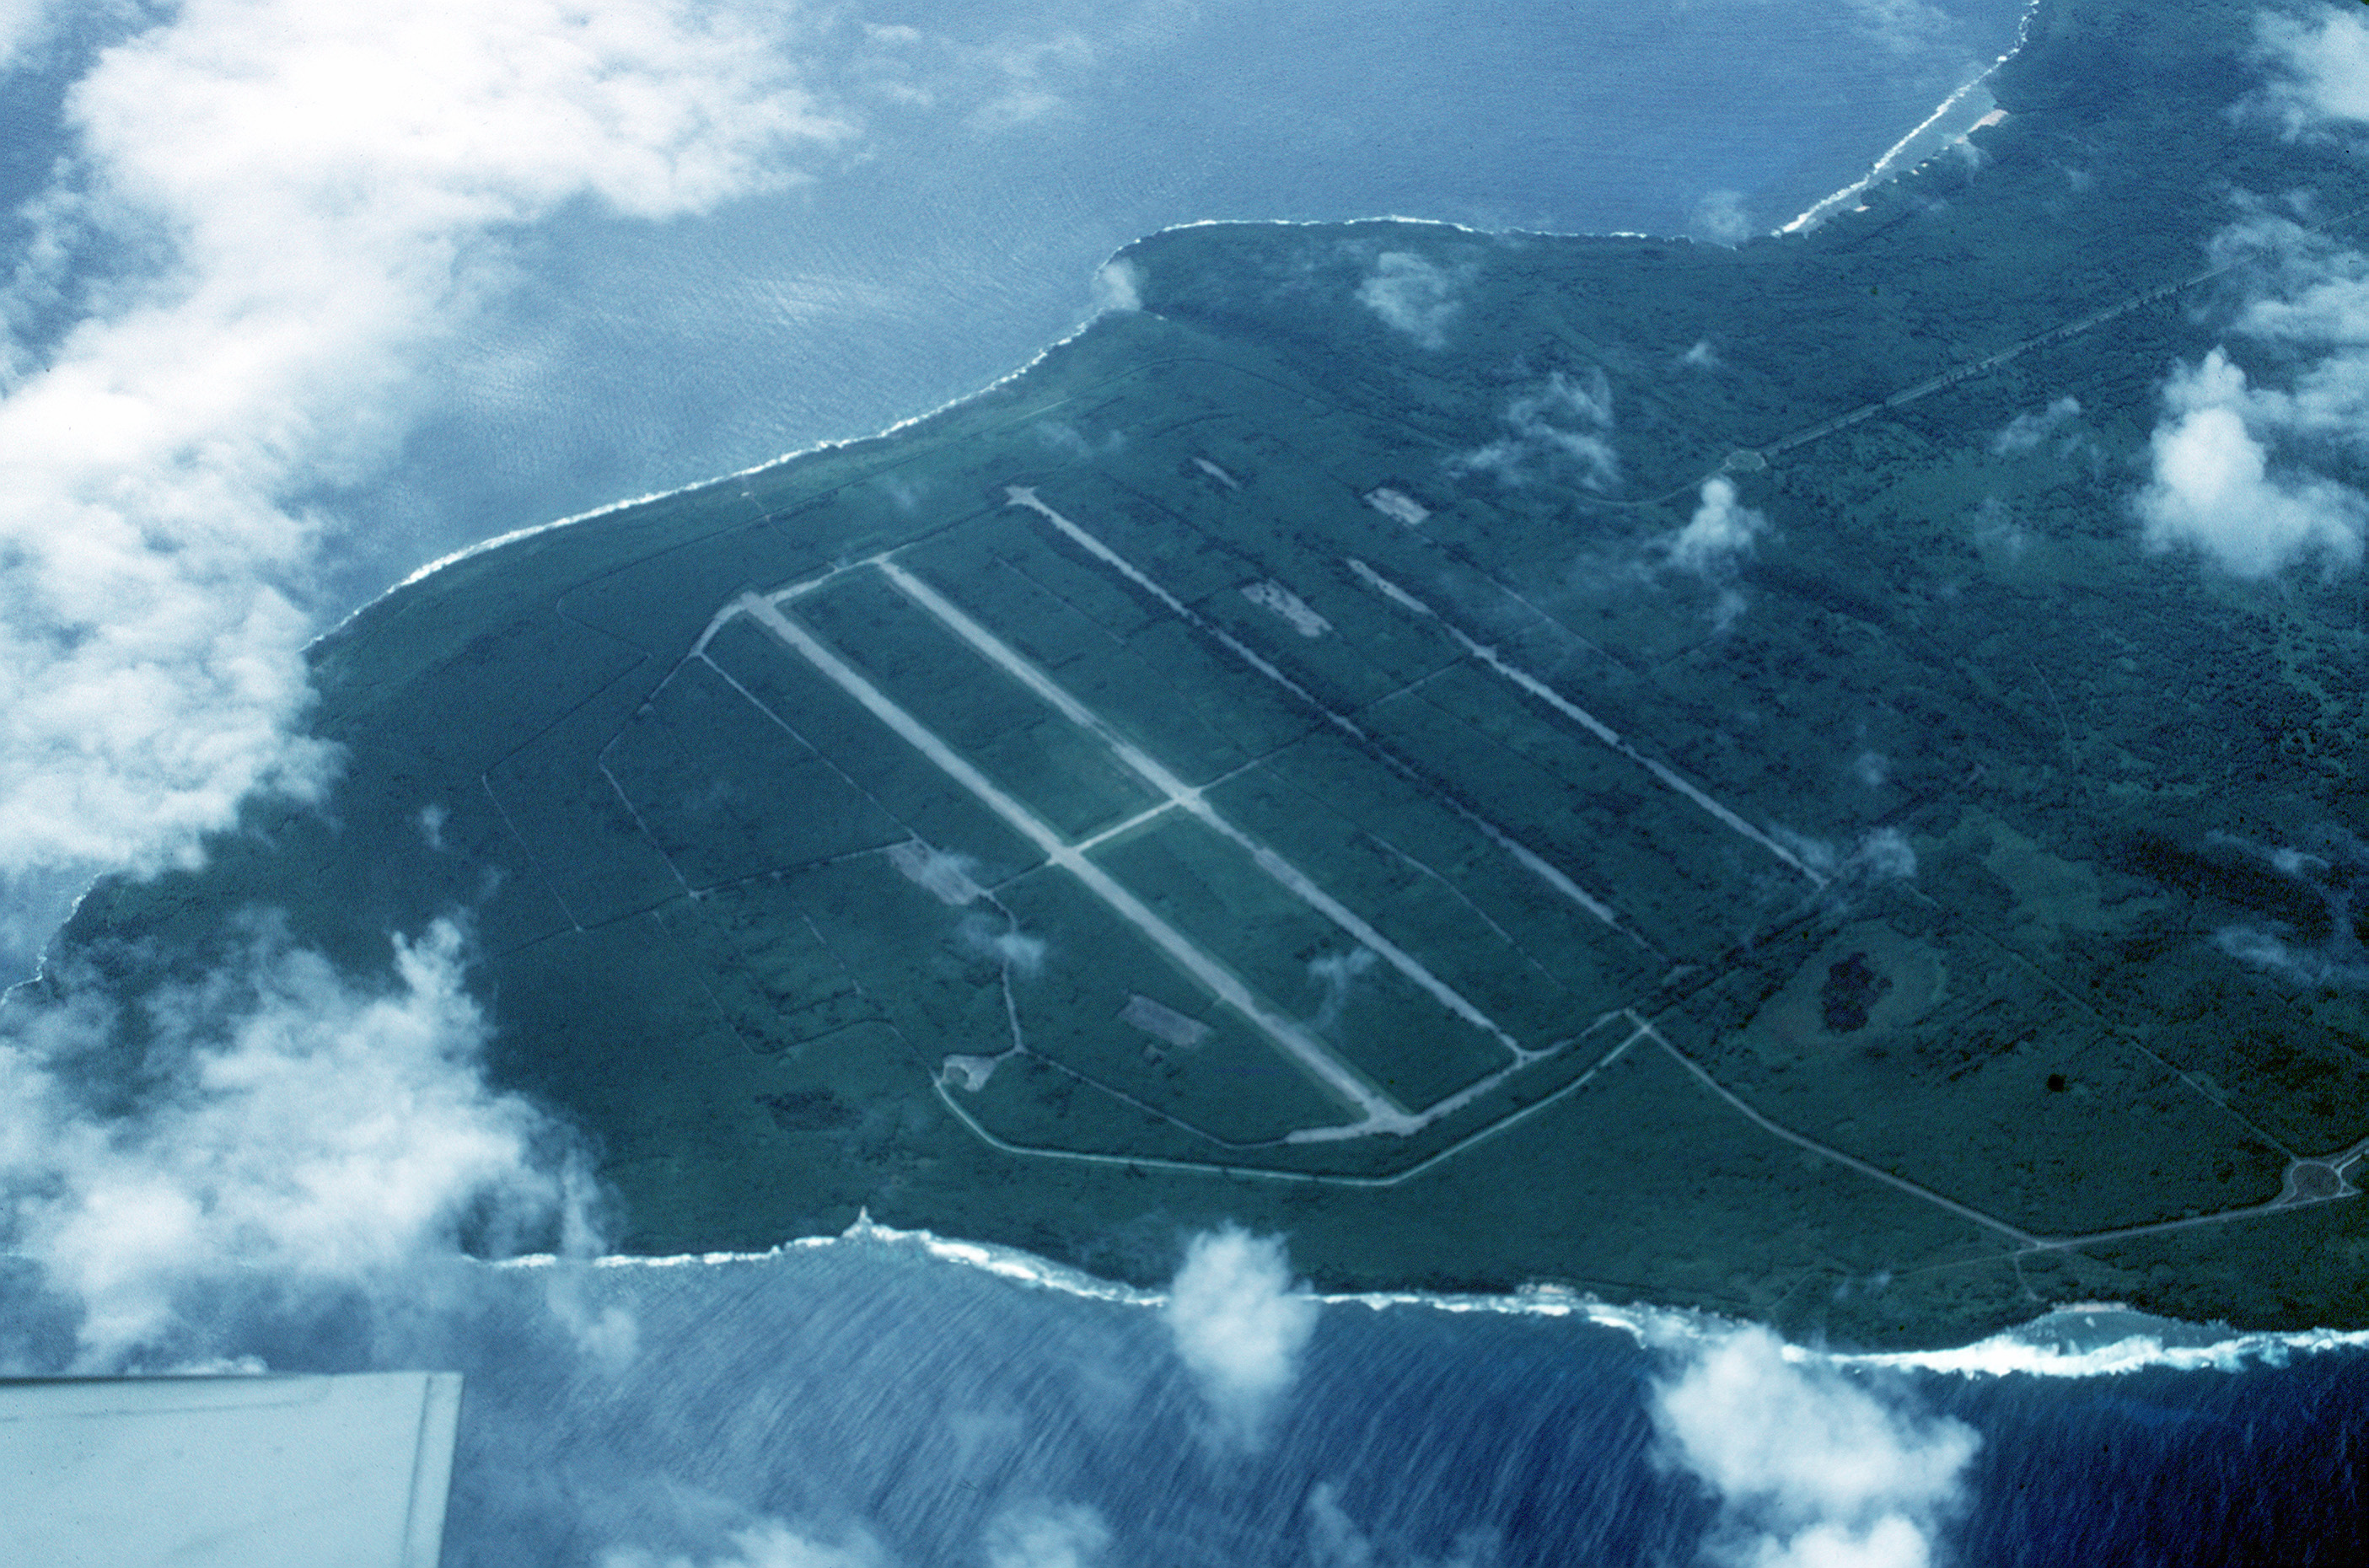 North Airfield at Tinian Island.